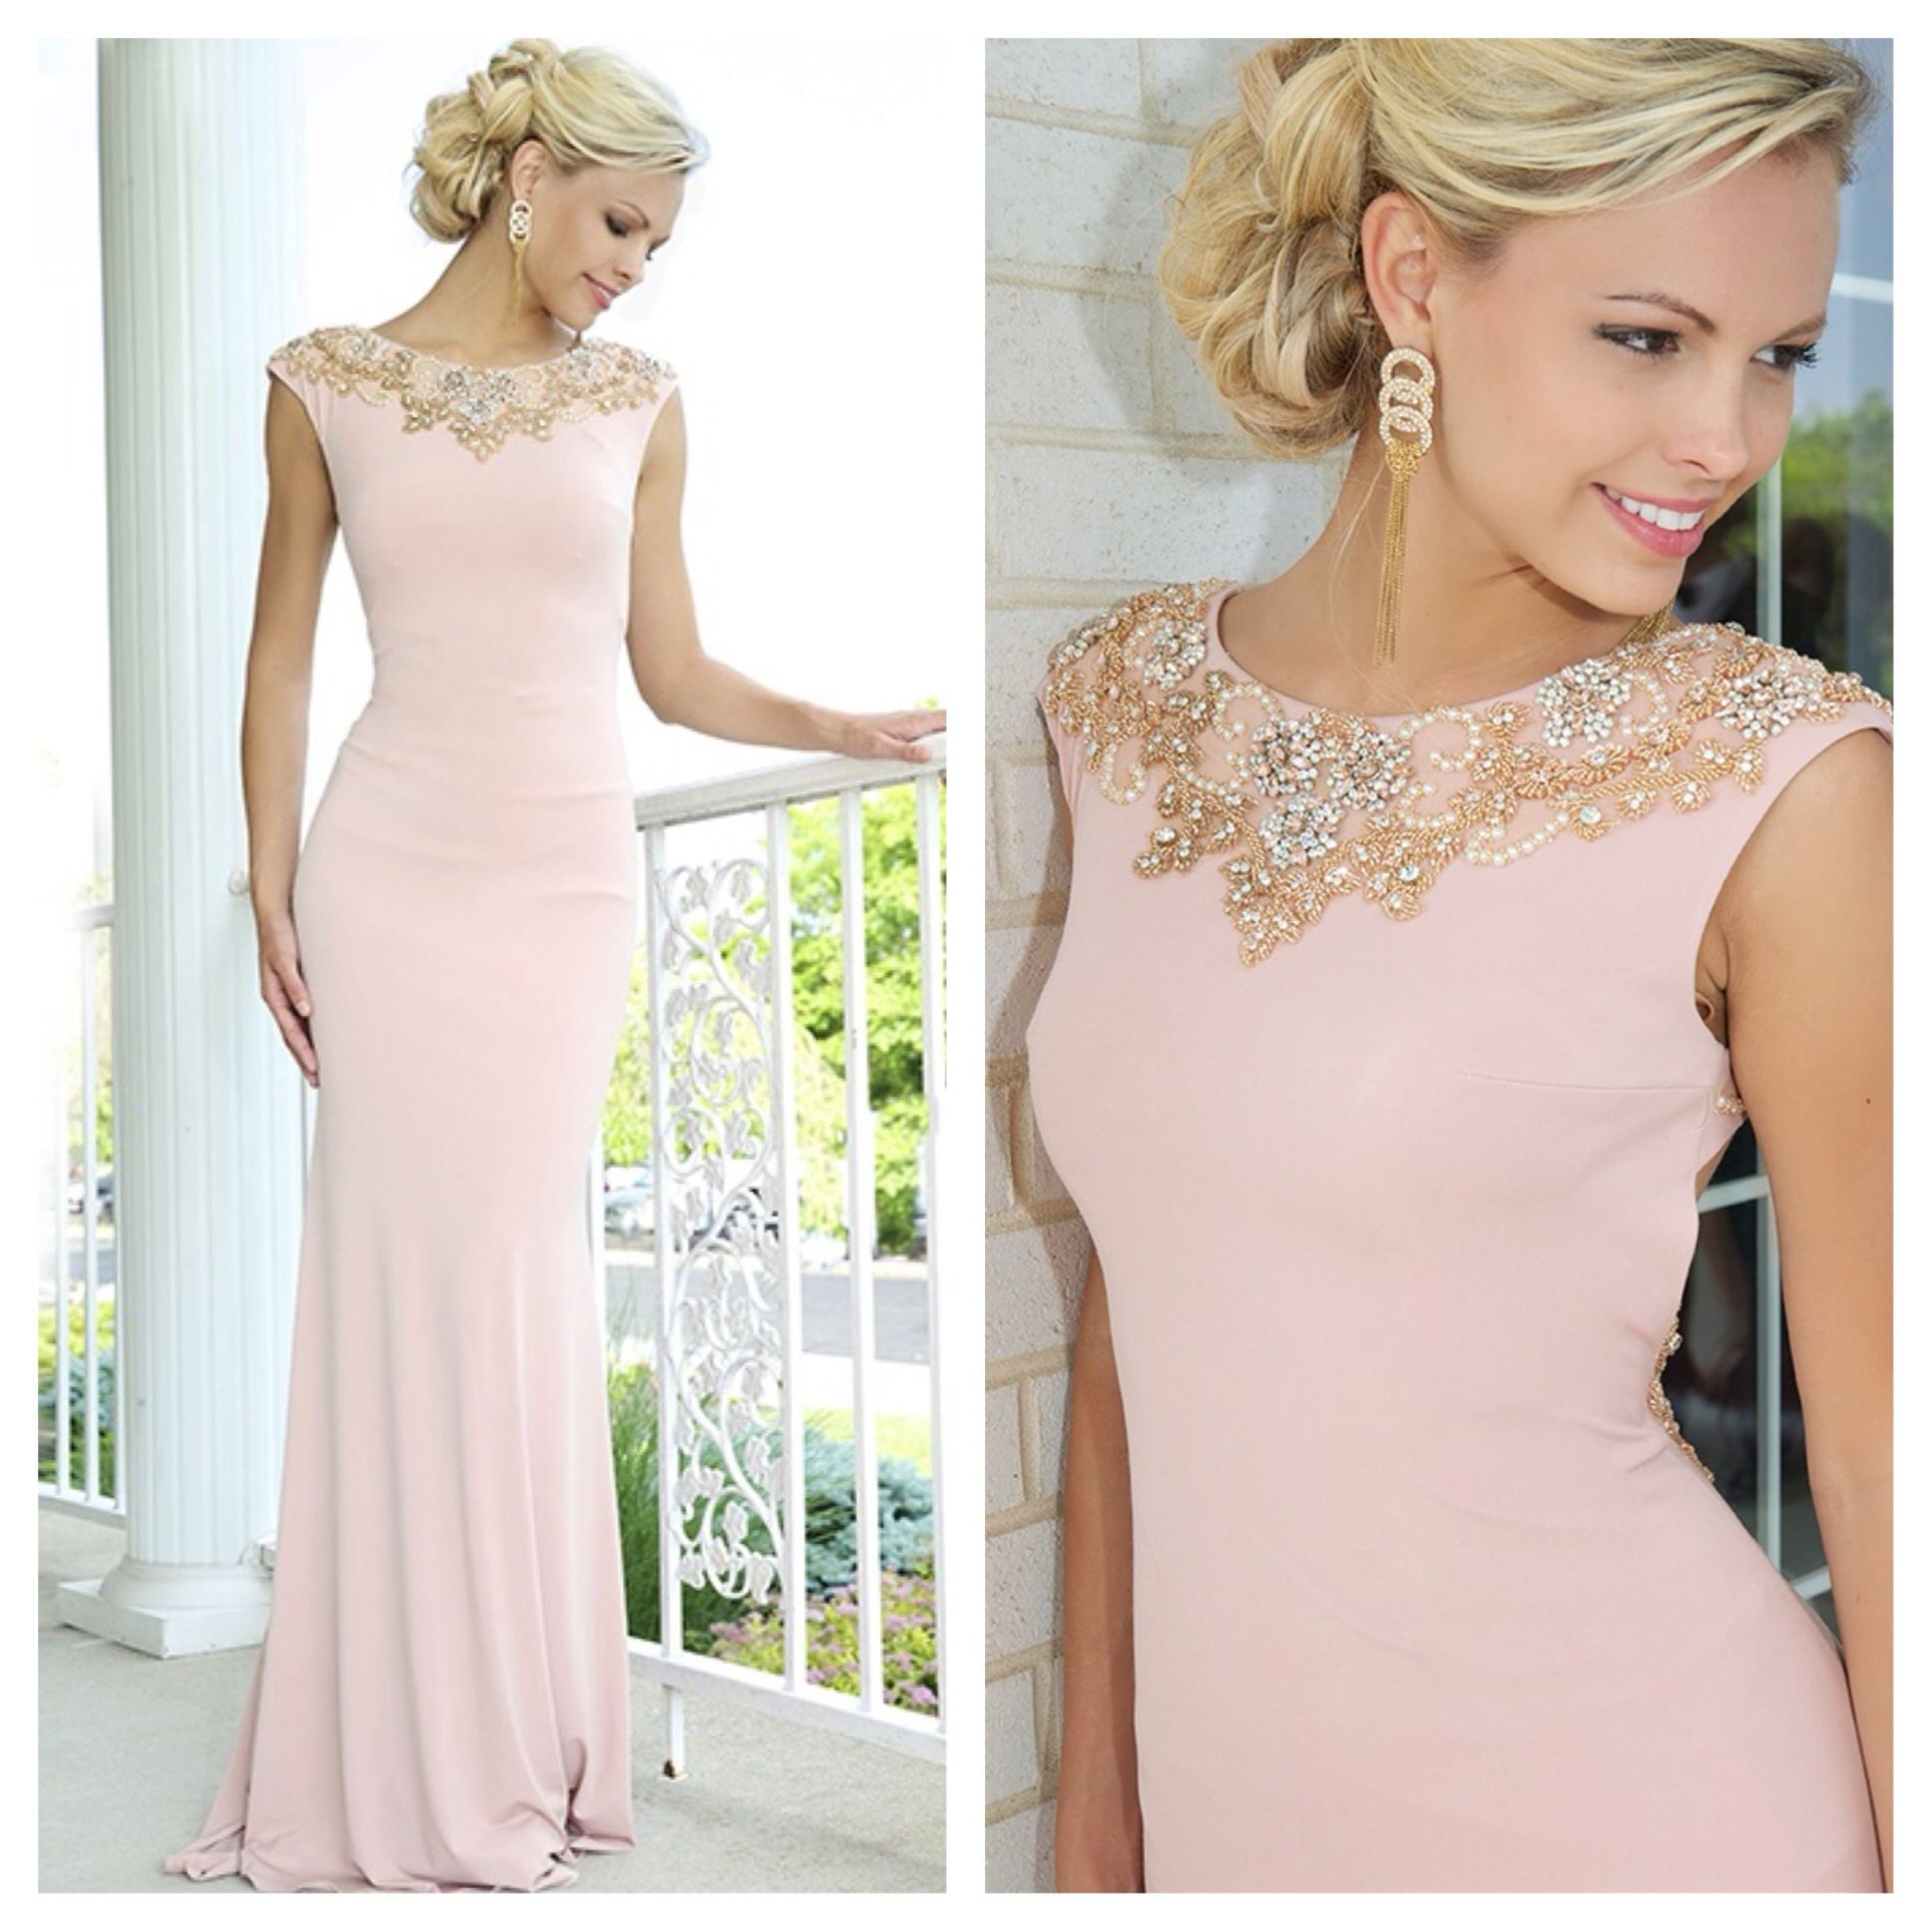 38ec07bdb4b Jovani Style 99112 Stunning cap sleeve form fitting jersey prom dress  features beaded embellishments and a